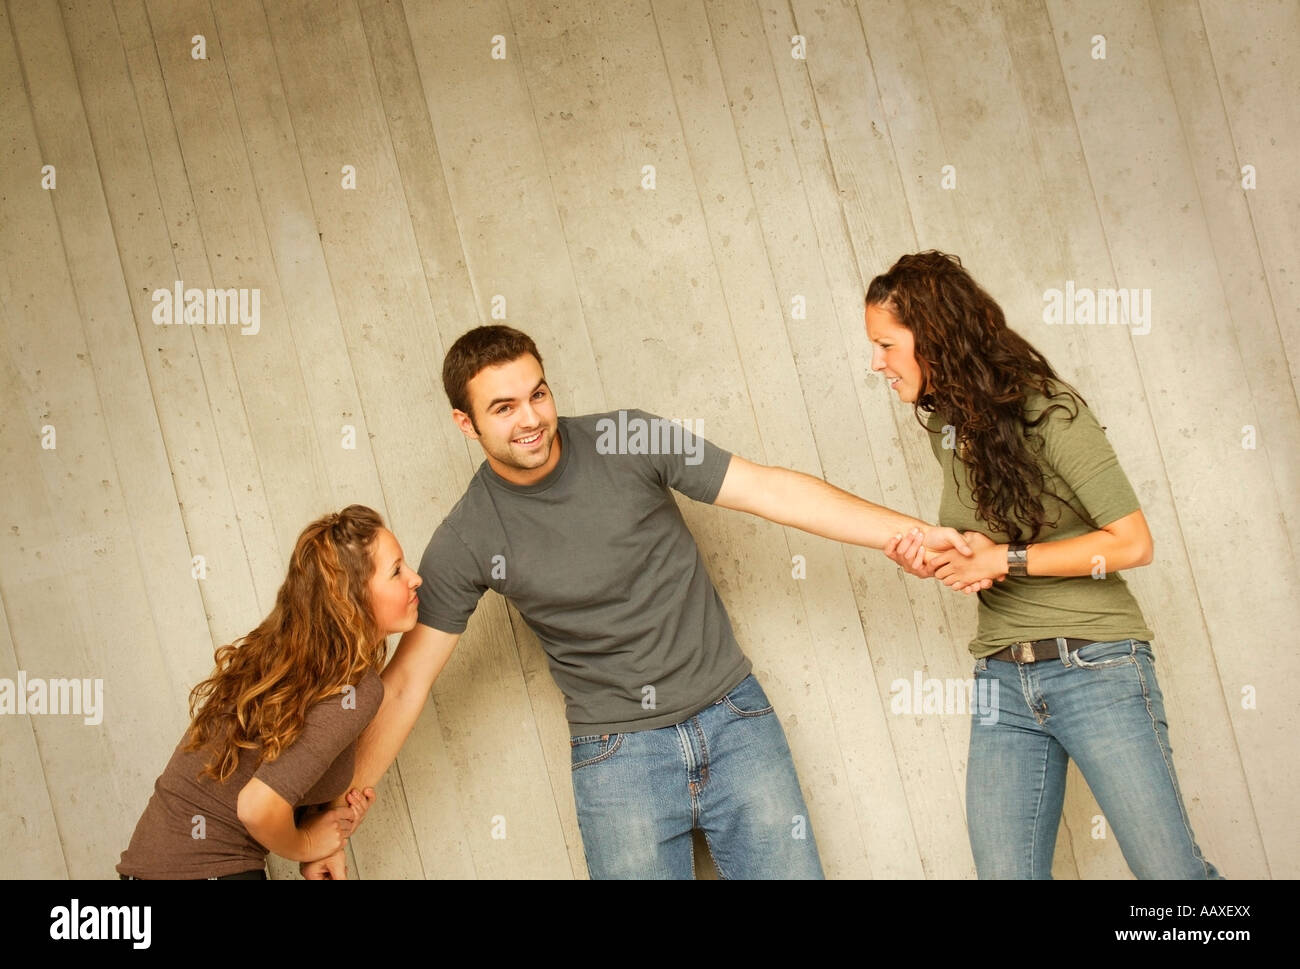 Women fighting over a man - Stock Image